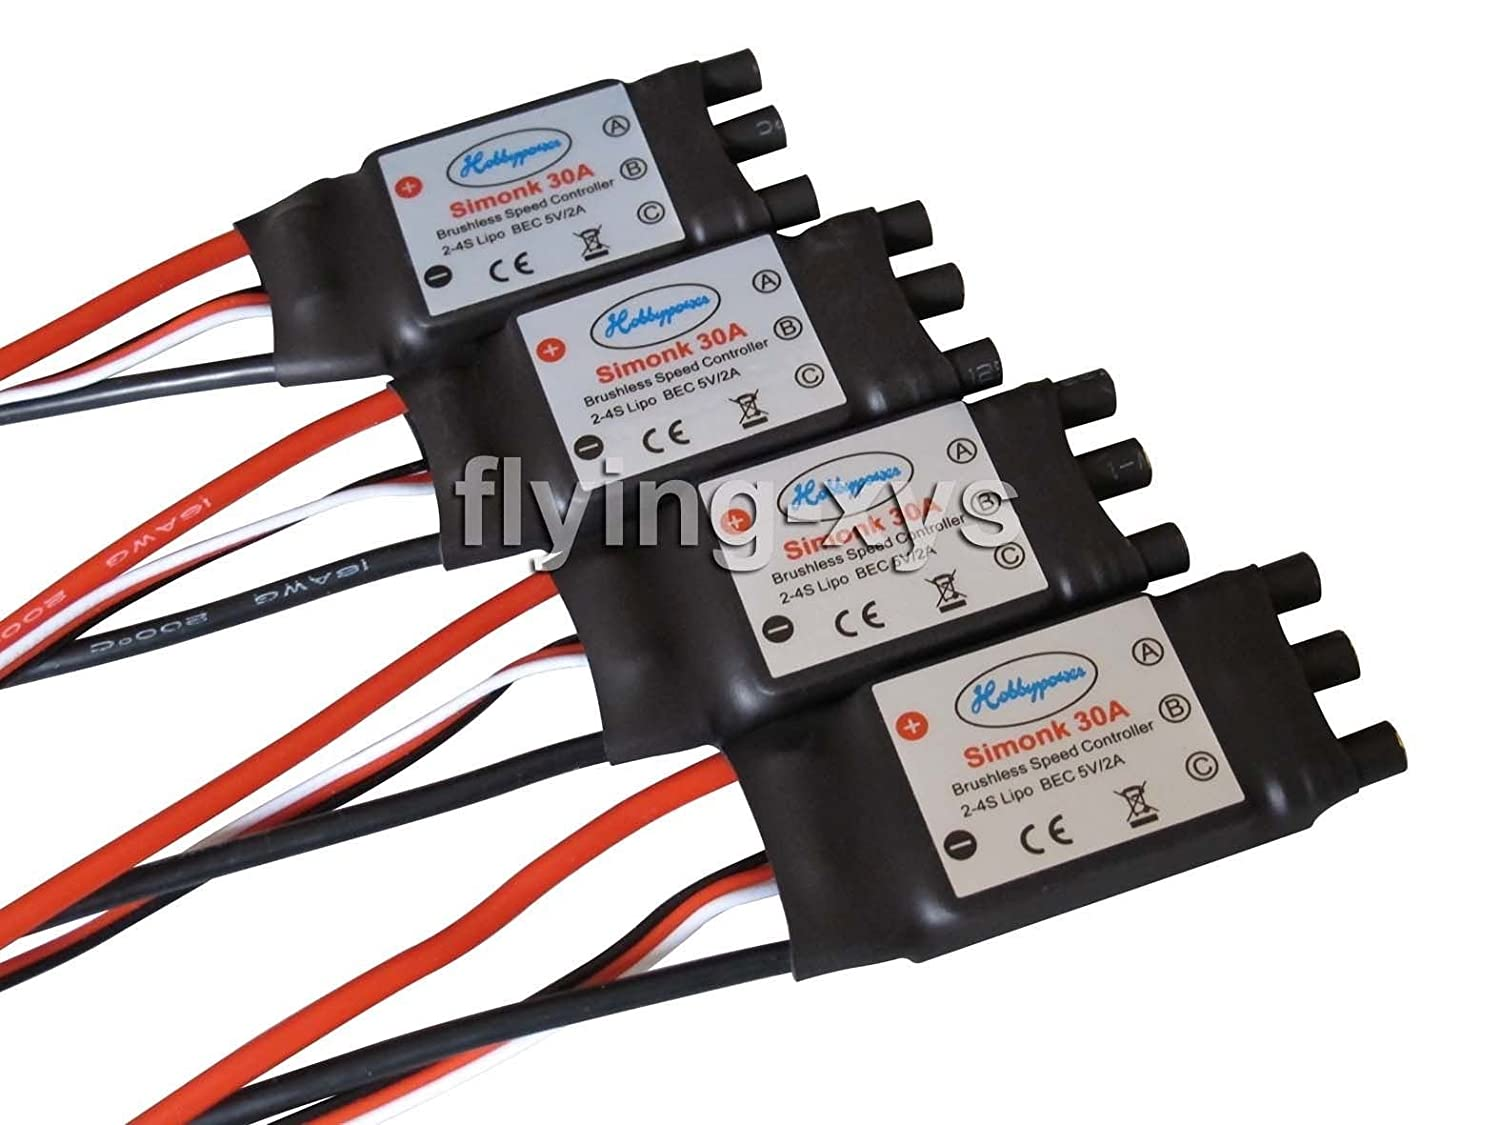 Pack of 4 pcs Hobbypower SimonK 30A ESC Brushless Speed Controller BEC 2A for Quadcopter F450 X525